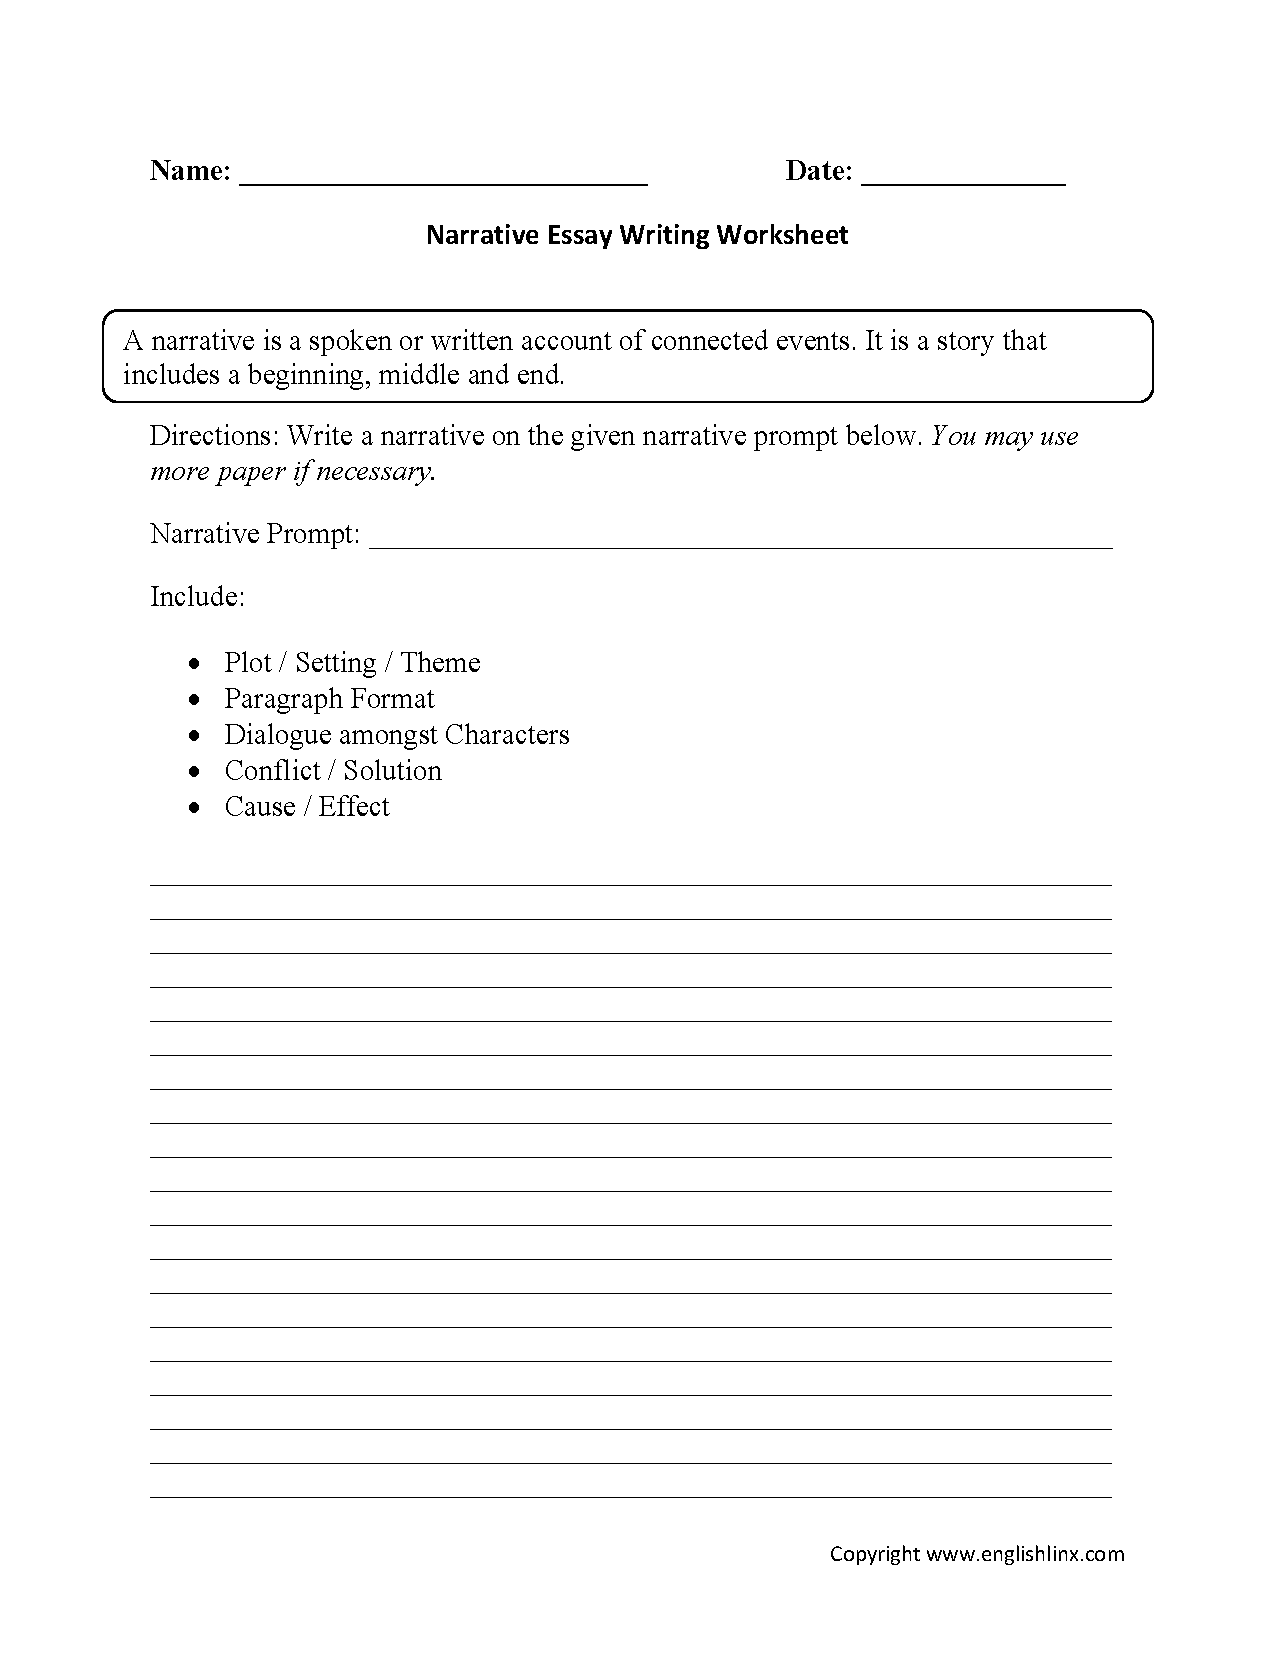 Narrative Essay Writing Worksheets